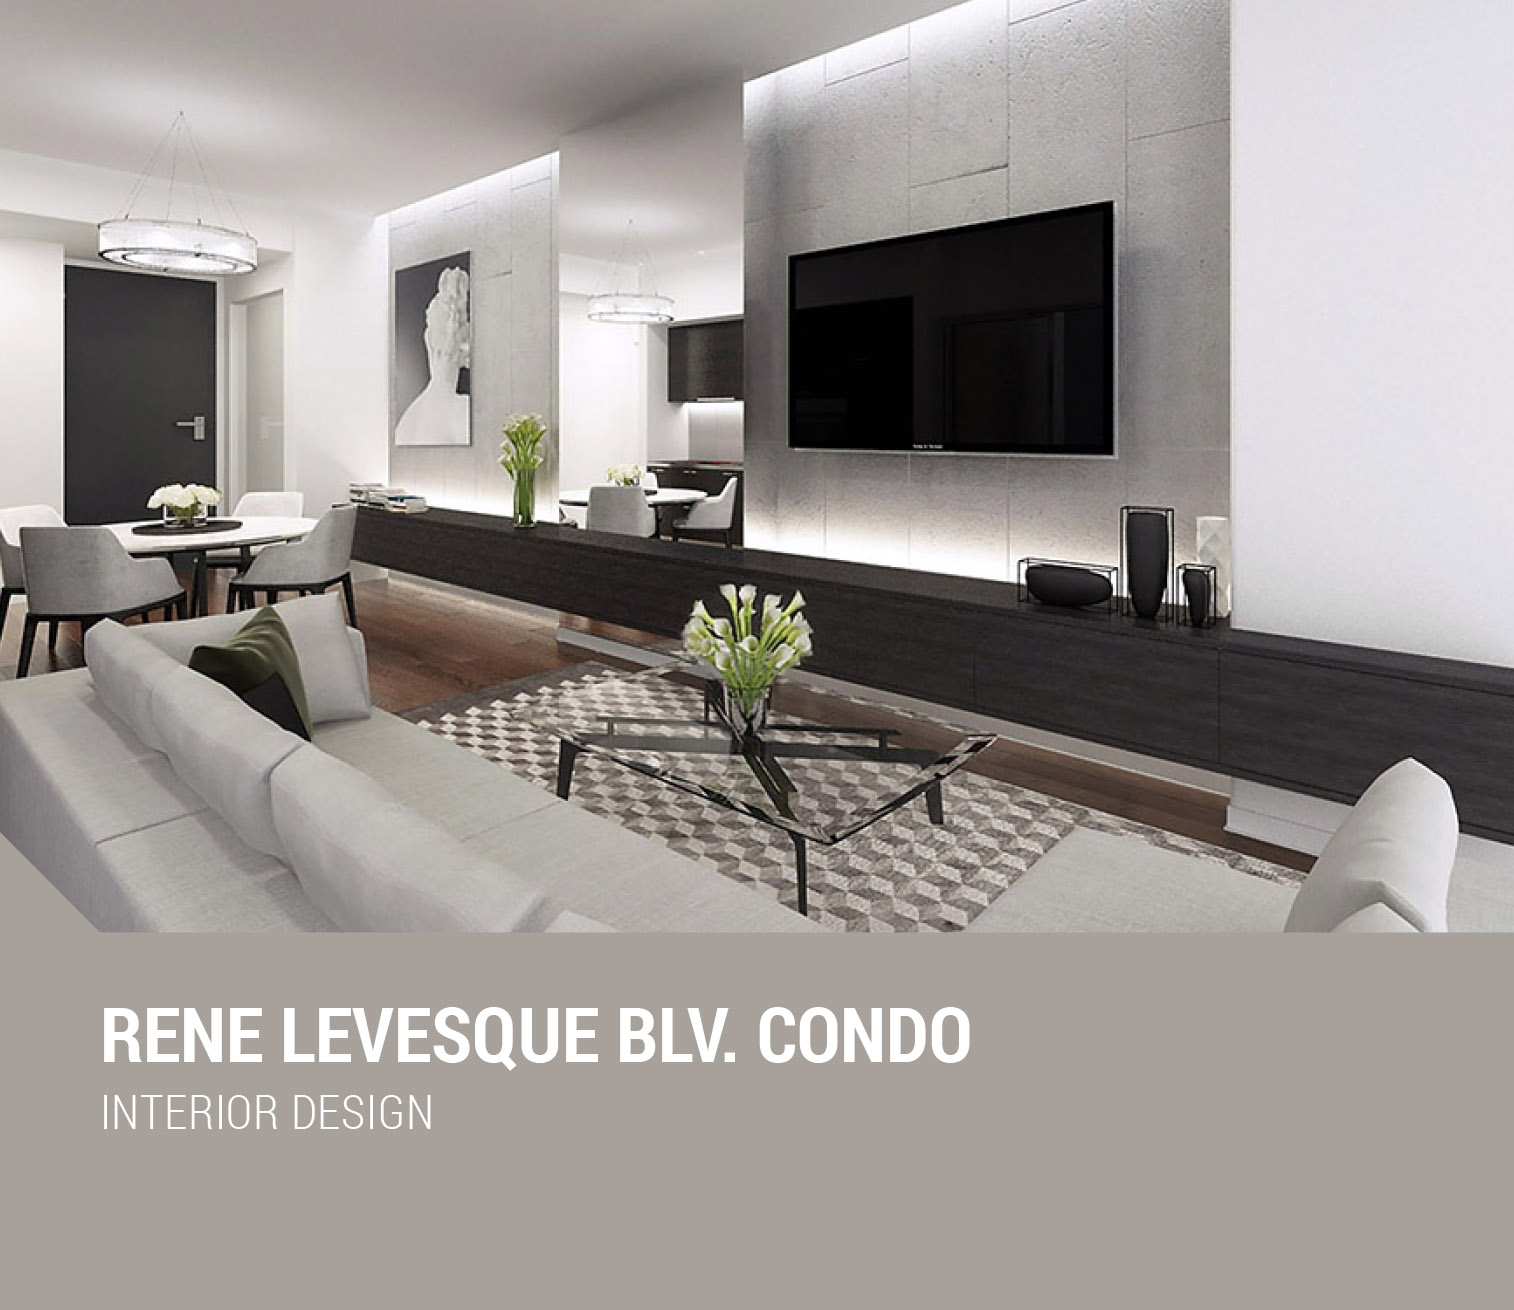 Schema Dimitra Chrona designer, creative director, architectural, 3D visualization, 3D Rendering, branding websites, digital, graphic design, interior design, real estate, luxury property, staging, museum, virtual, art, brochures, exhibitions, logotype, logo, Canada Quebec Montreal Athens Greece schema design rene levesque condo small.jpg